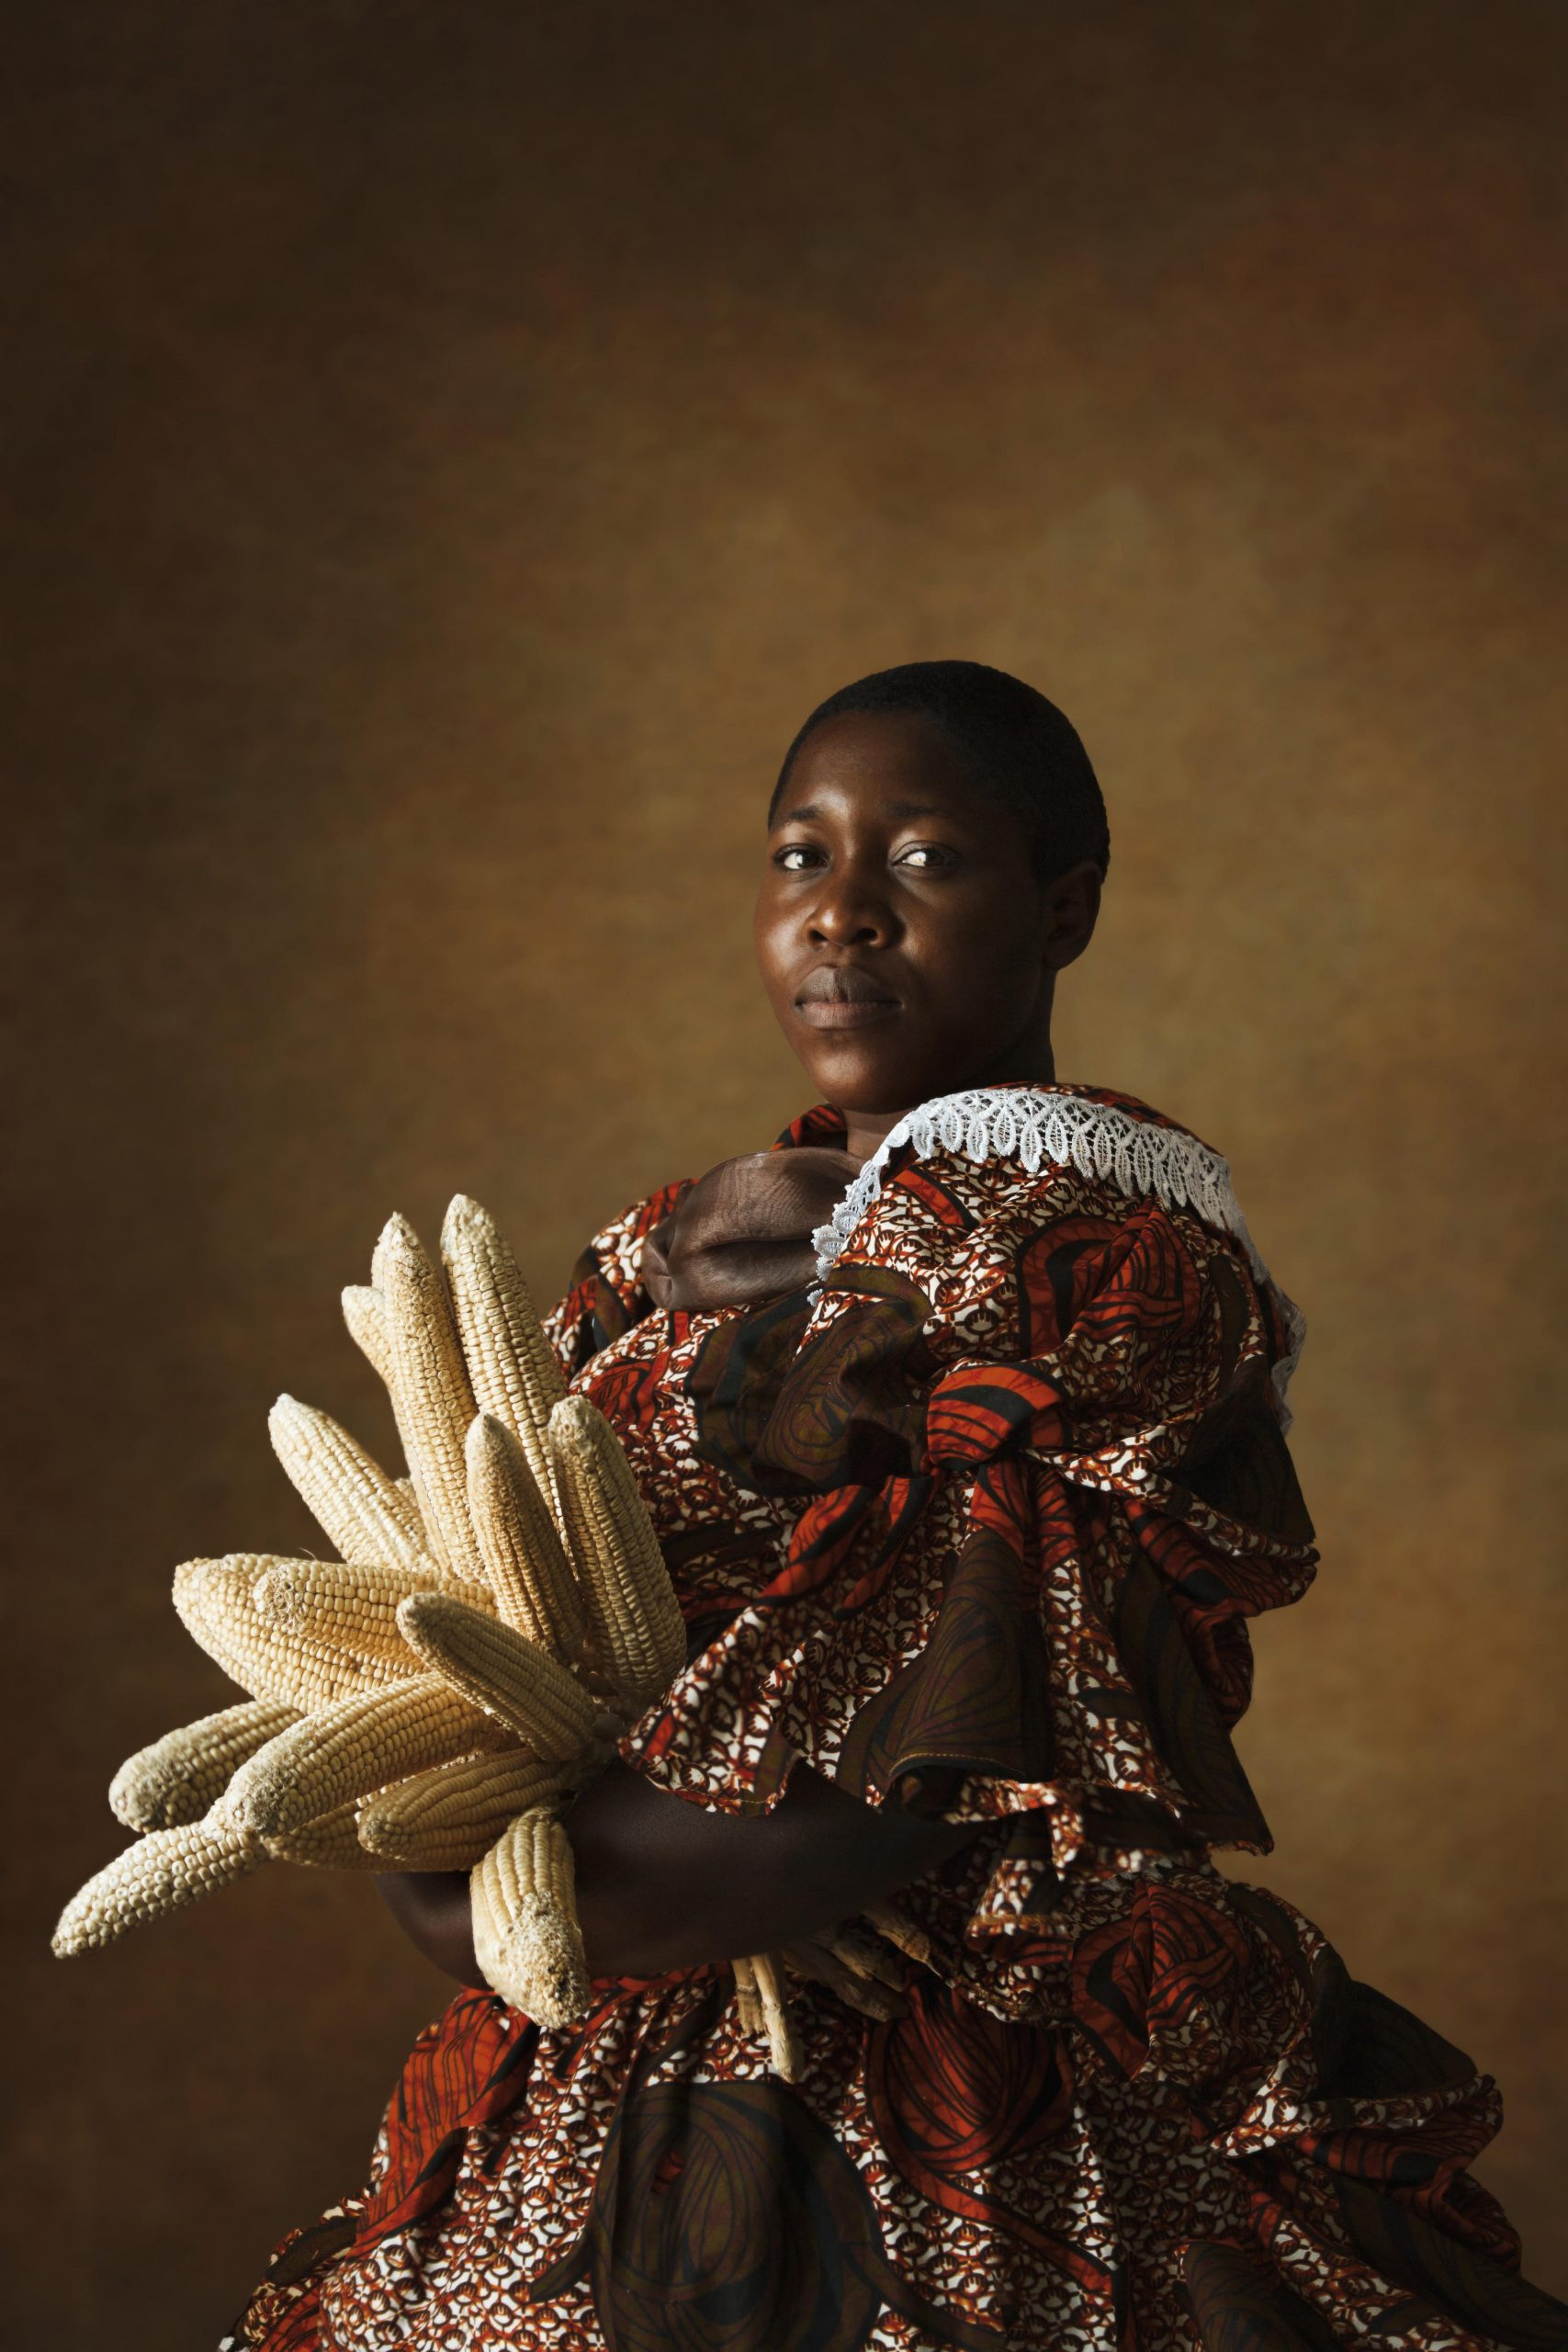 Tamary Kudita, African Victorian III: Lady with Corn, 2020. Courtesy of the artist.